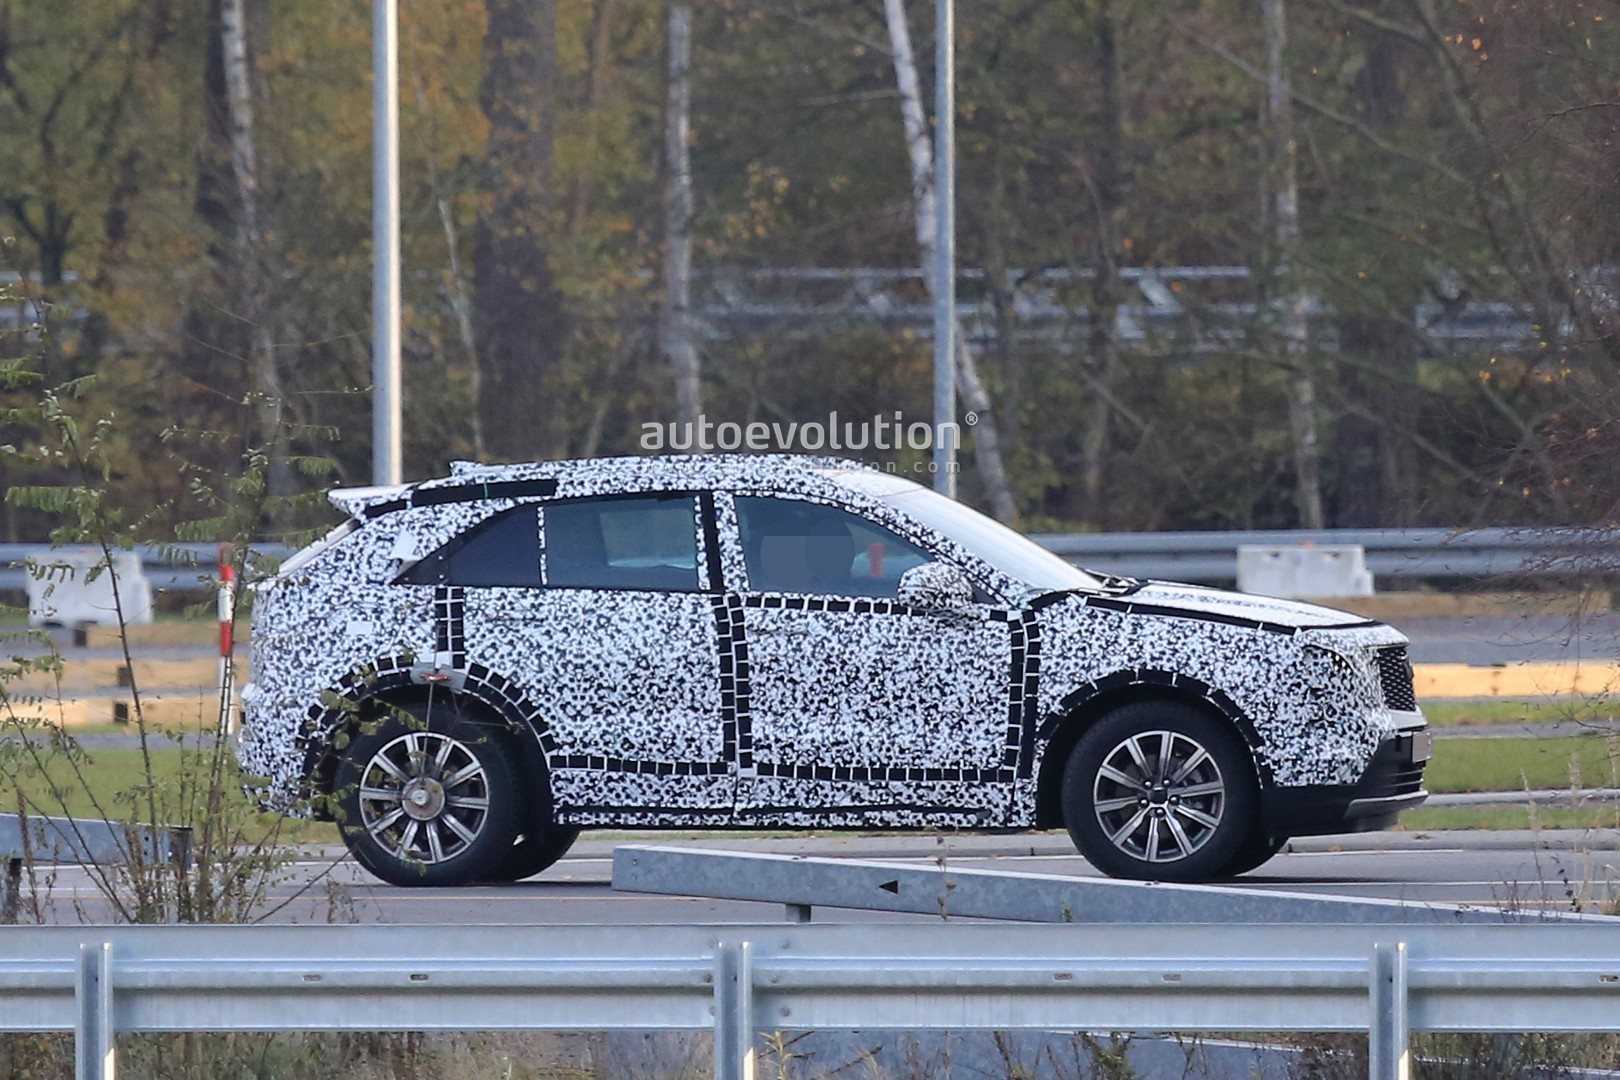 Cadillac XT4 to Hit Showrooms in 2018, Three-Row and Subcompact Crossovers to Follow - autoevolution